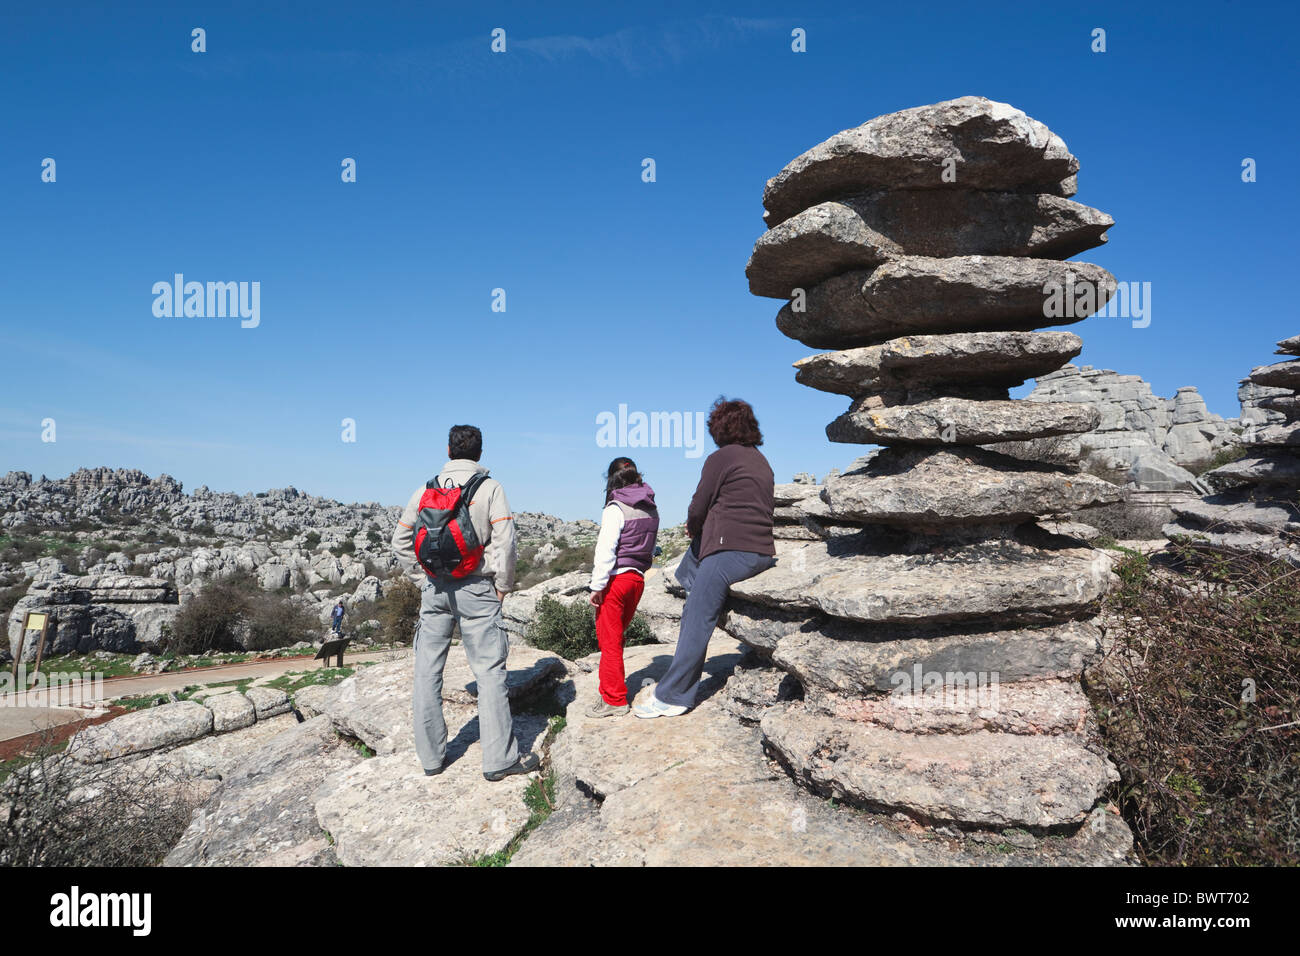 Family at rock formation known as El Tornillo, or the Screw in El Torcal Park Nature Reserve near Antequera, Spain. - Stock Image